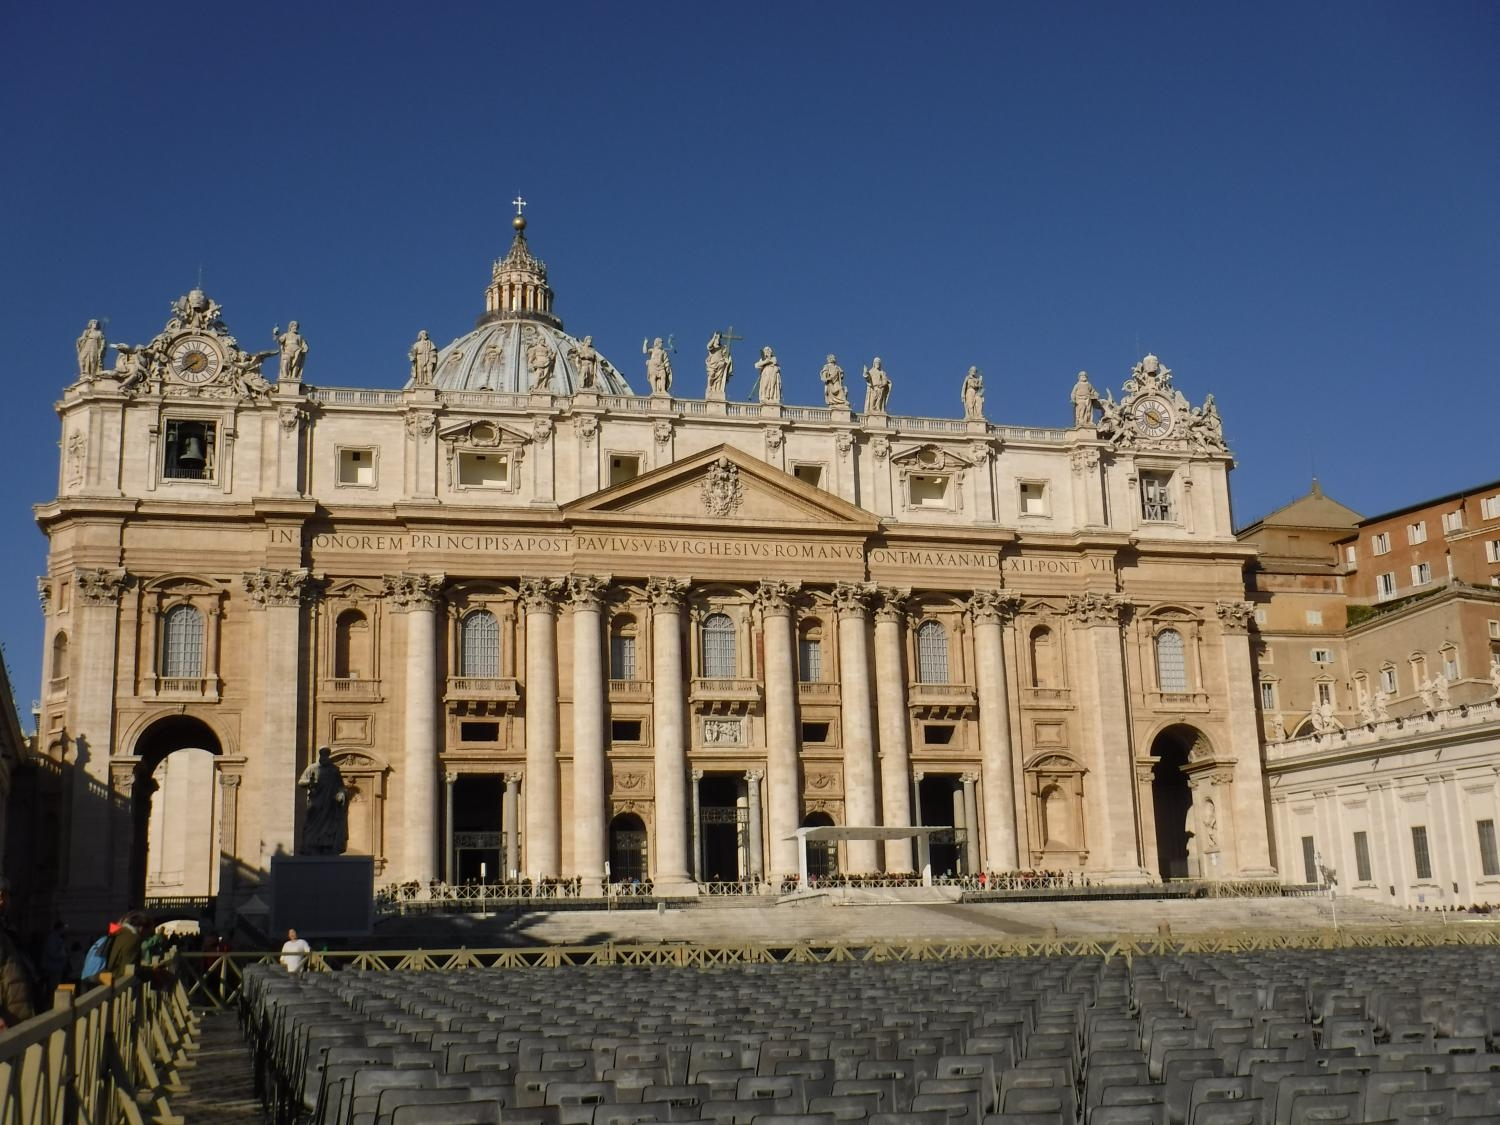 The Vatican in Rome Italy.